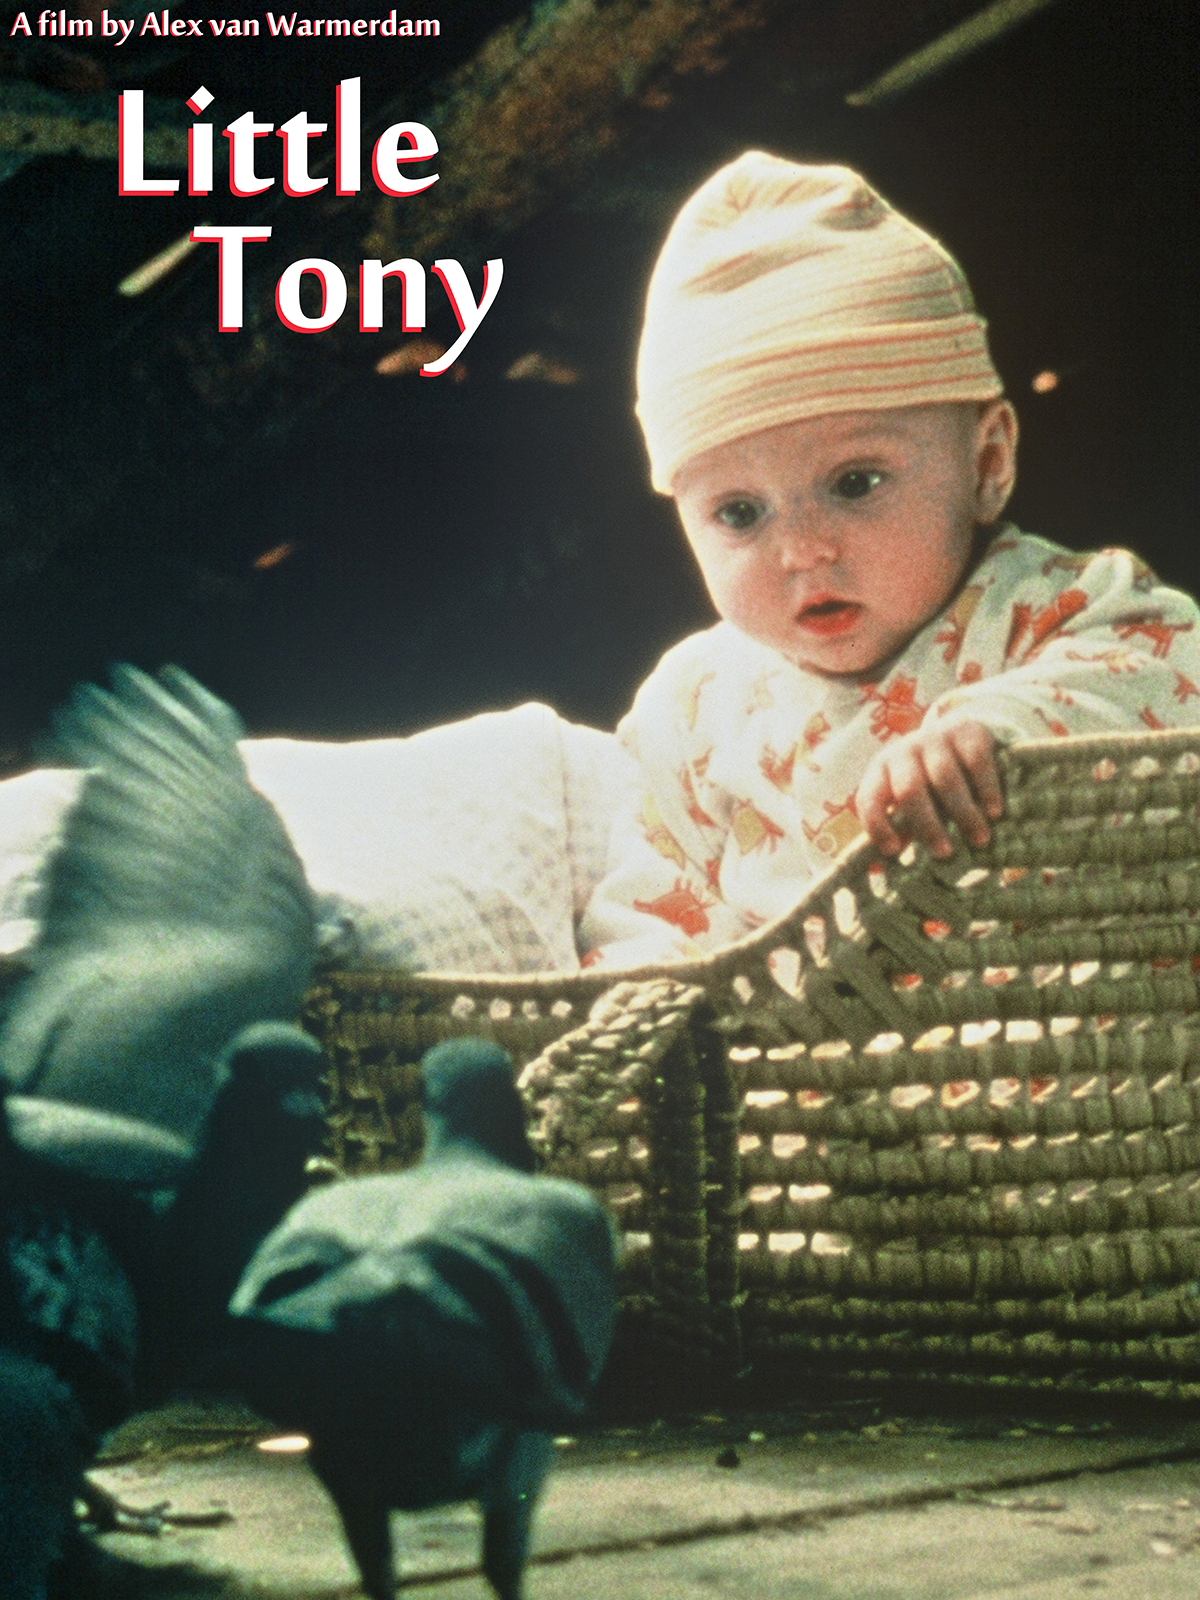 LITTLE TONY 1200X1600 ARTWORK AMAZON